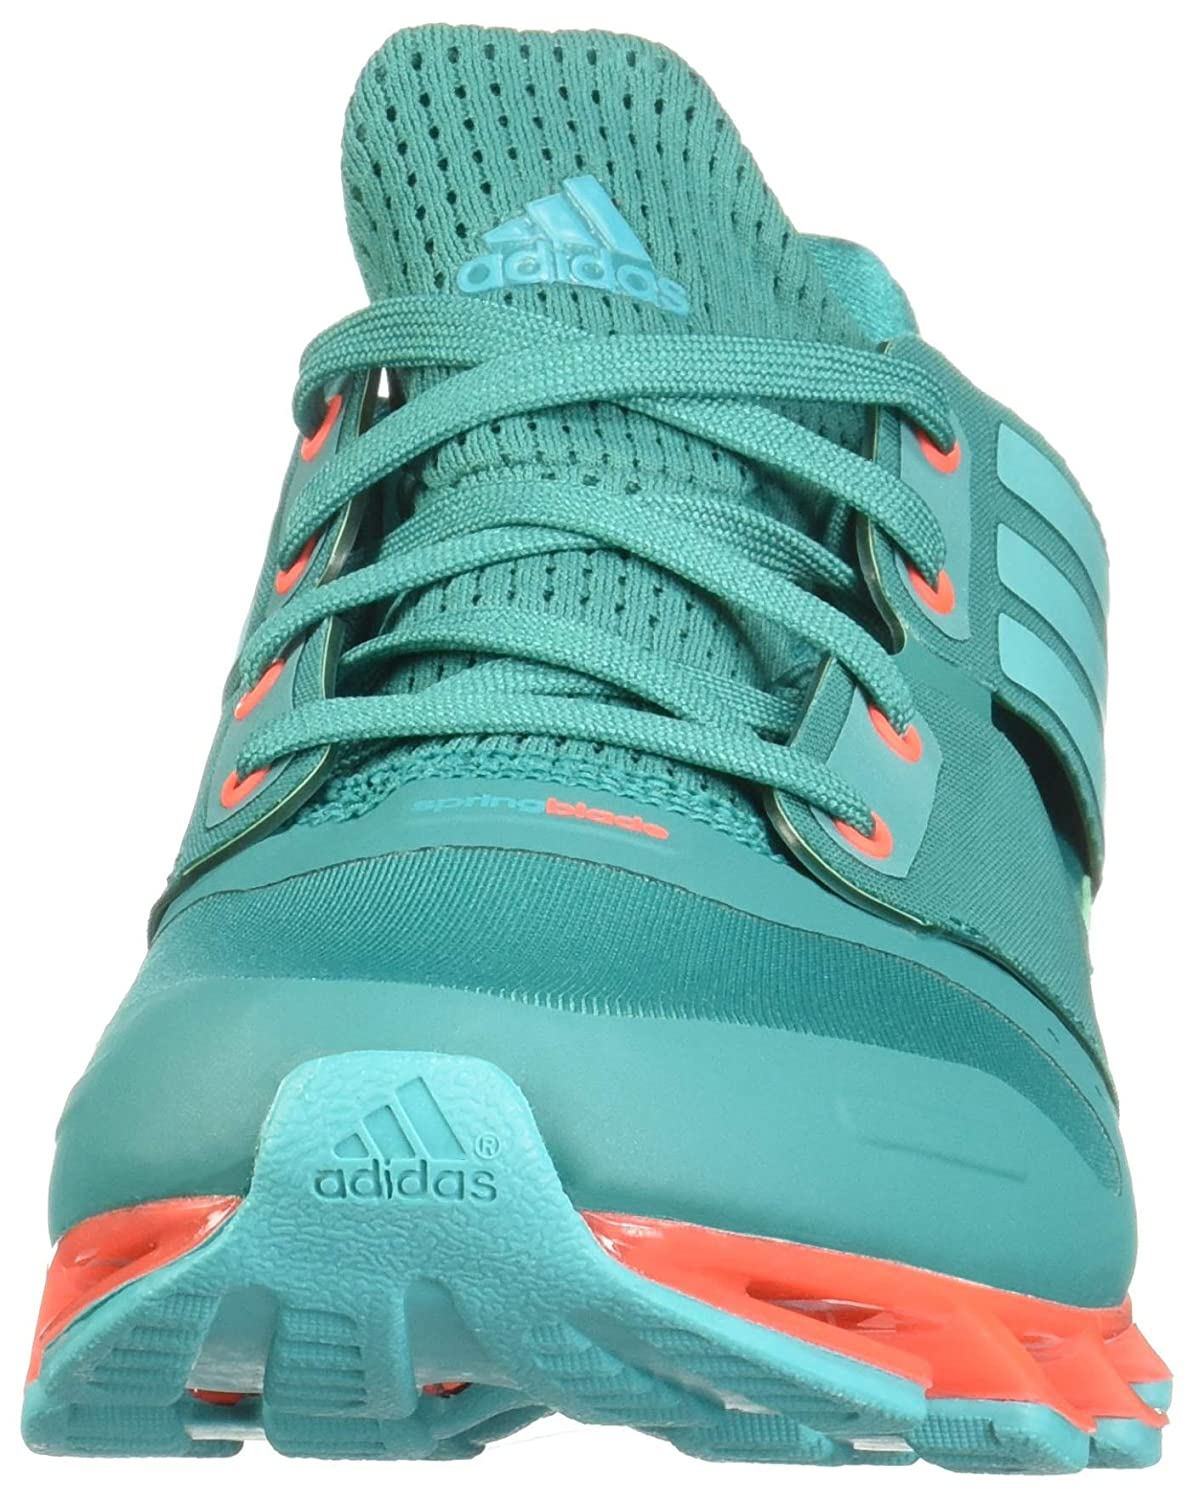 c3989b36eac1 adidas Springblade Solyce, Chaussures de Running Homme: Amazon.fr:  Chaussures et Sacs